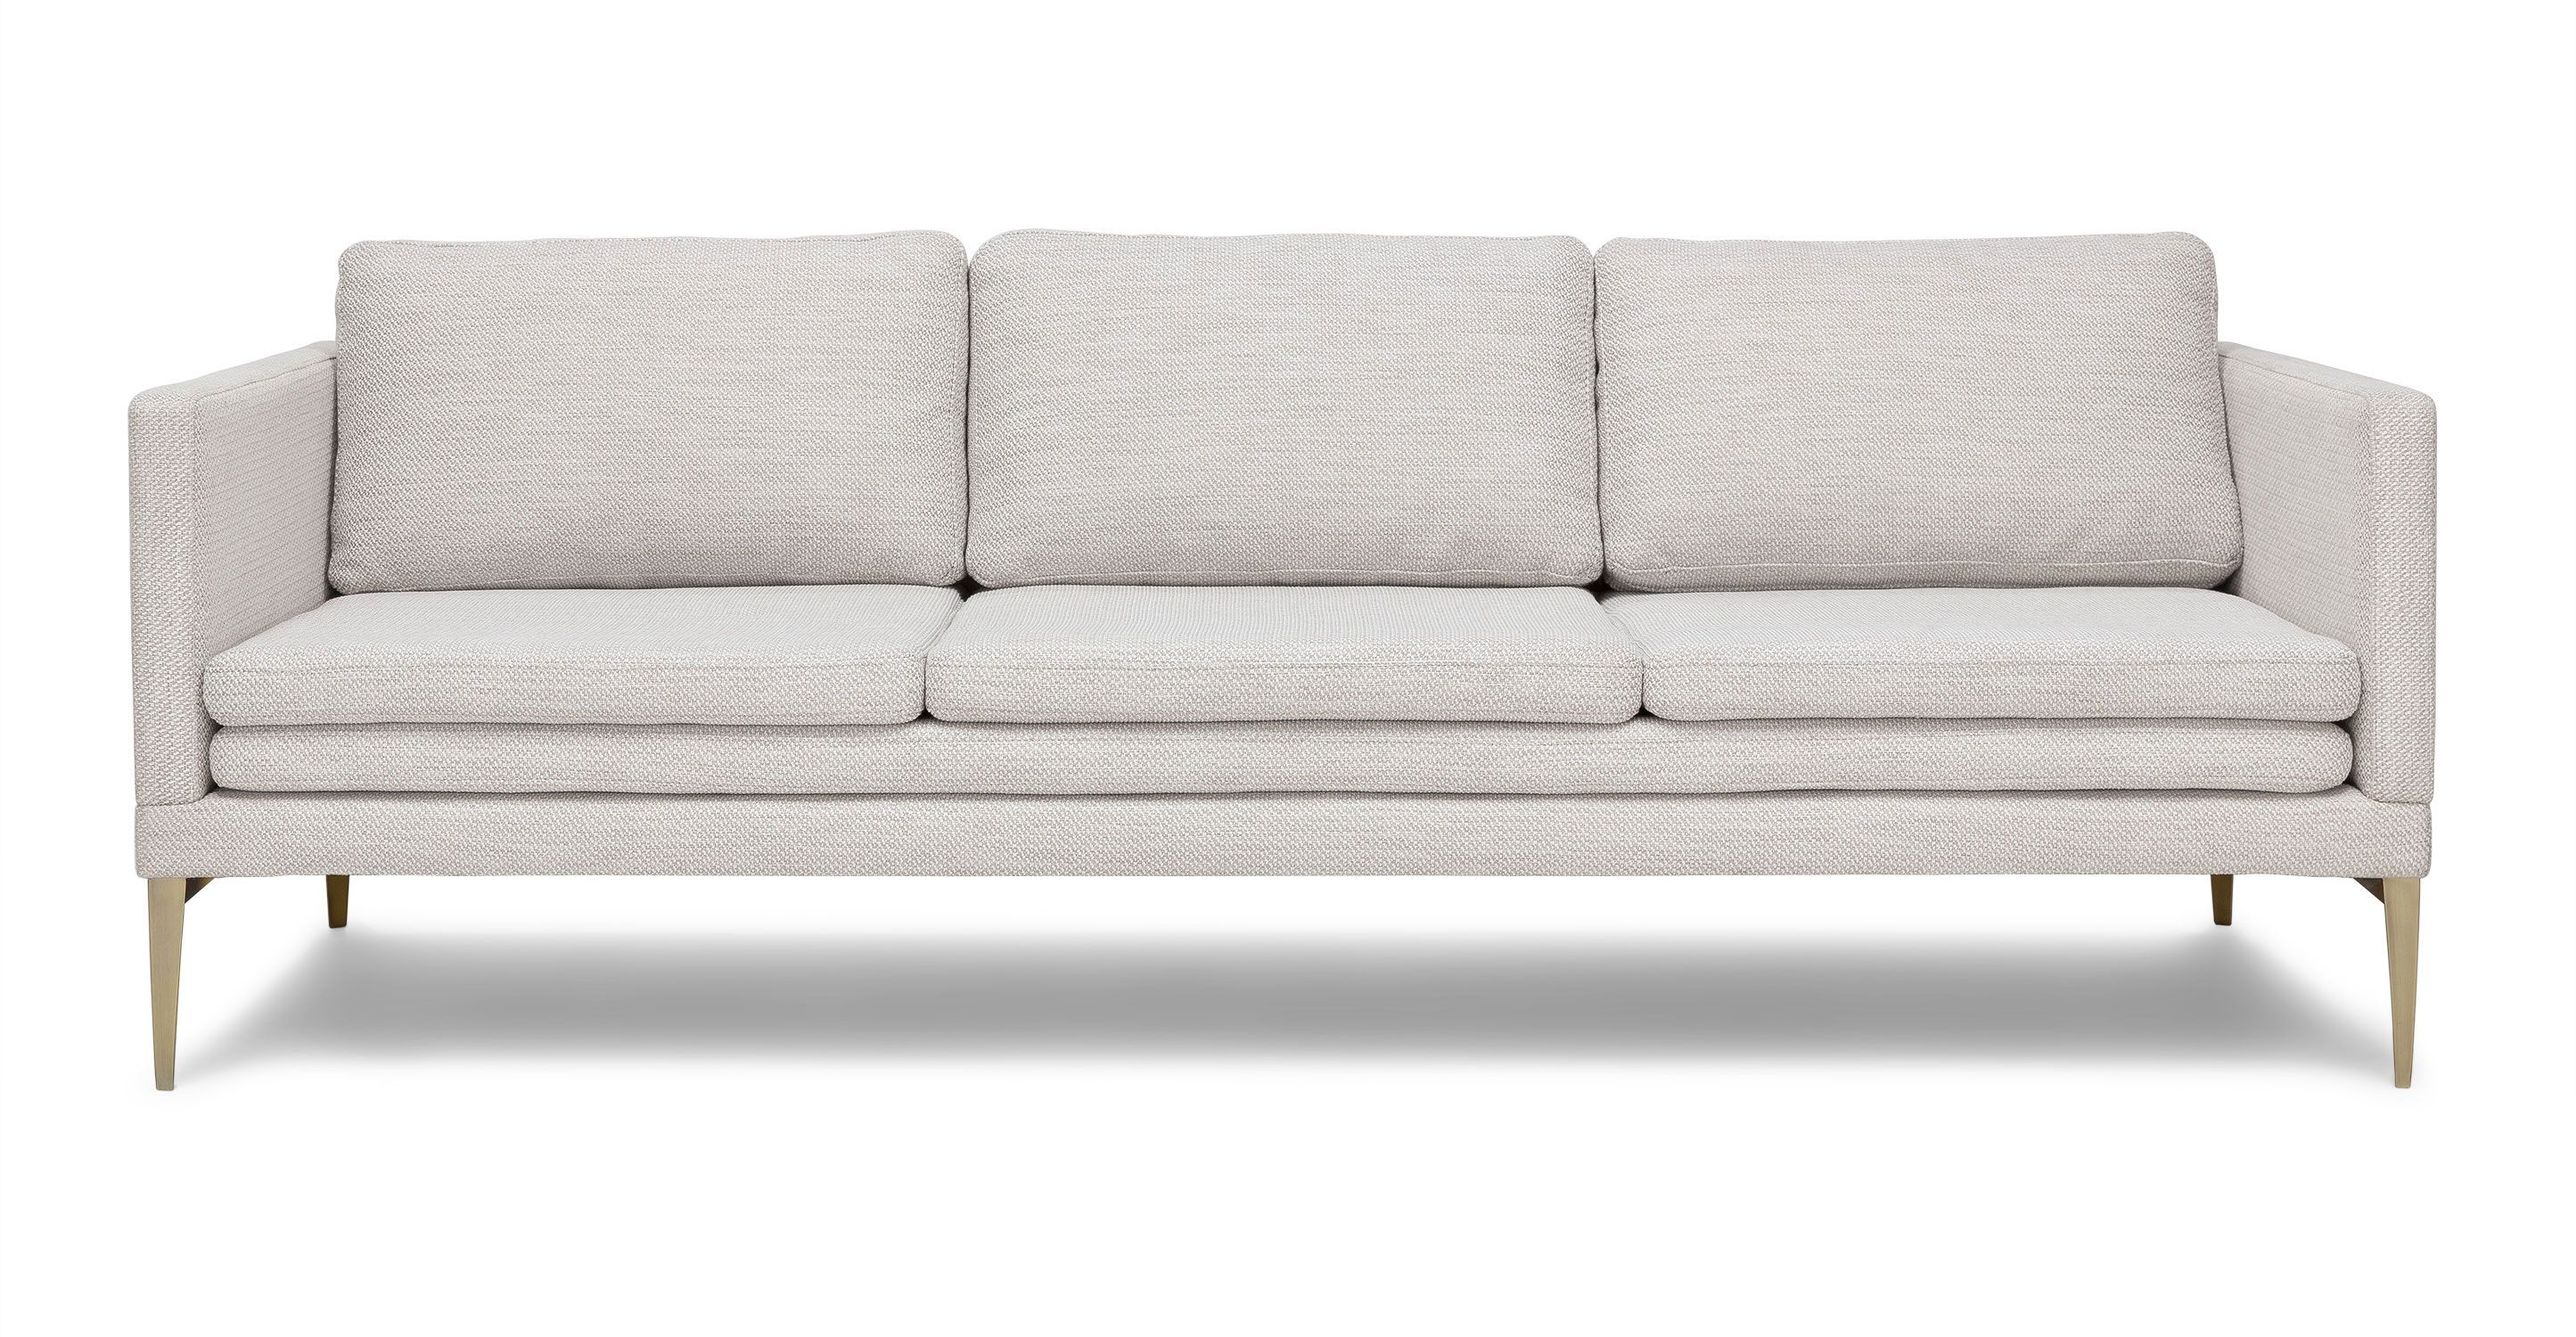 Ivory White Sofa With Metal Legs   Article Triplo Contemporary Furniture is part of Formal Living Room Sofa - Slim and elegant, this sofa has an unexpected triple layer seat and stiletto metal legs  The down filled cushions are covered in a heavy weave tweed fabric, with just a slight touch of shiny thread  If it's fashion and function that you're after, this is the sophisticated choice for you